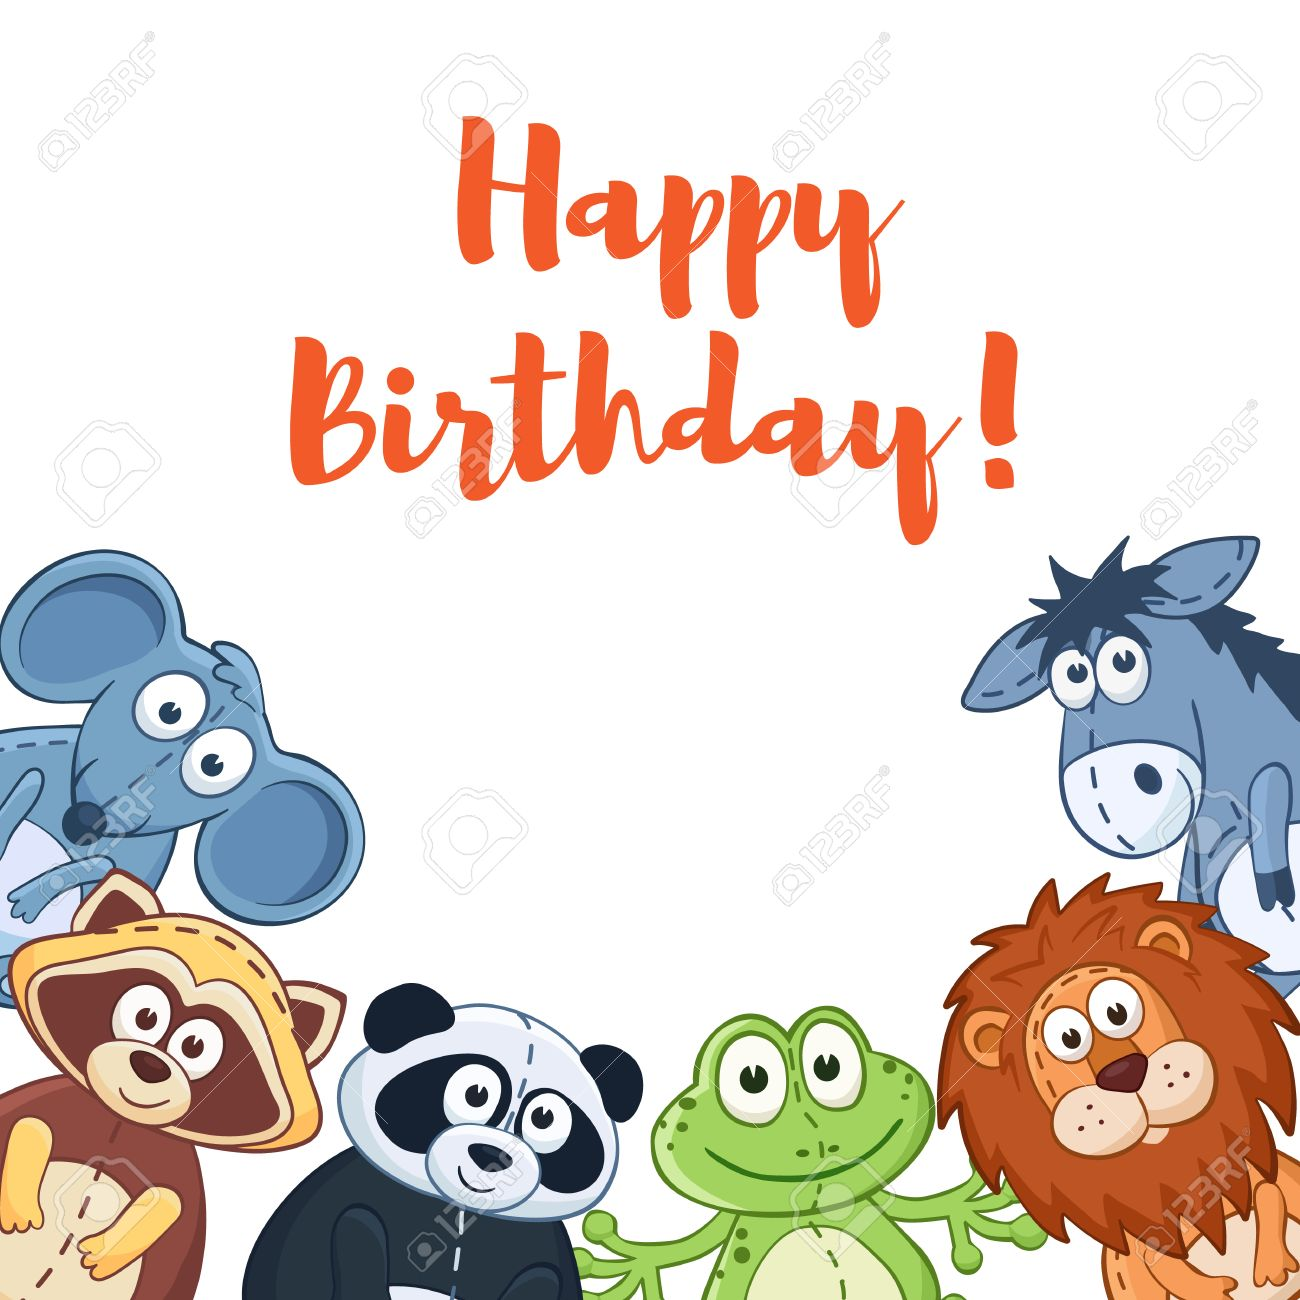 Happy Birthday Card With Cute Cartoon Animals Isolated On White Background Stock Vector